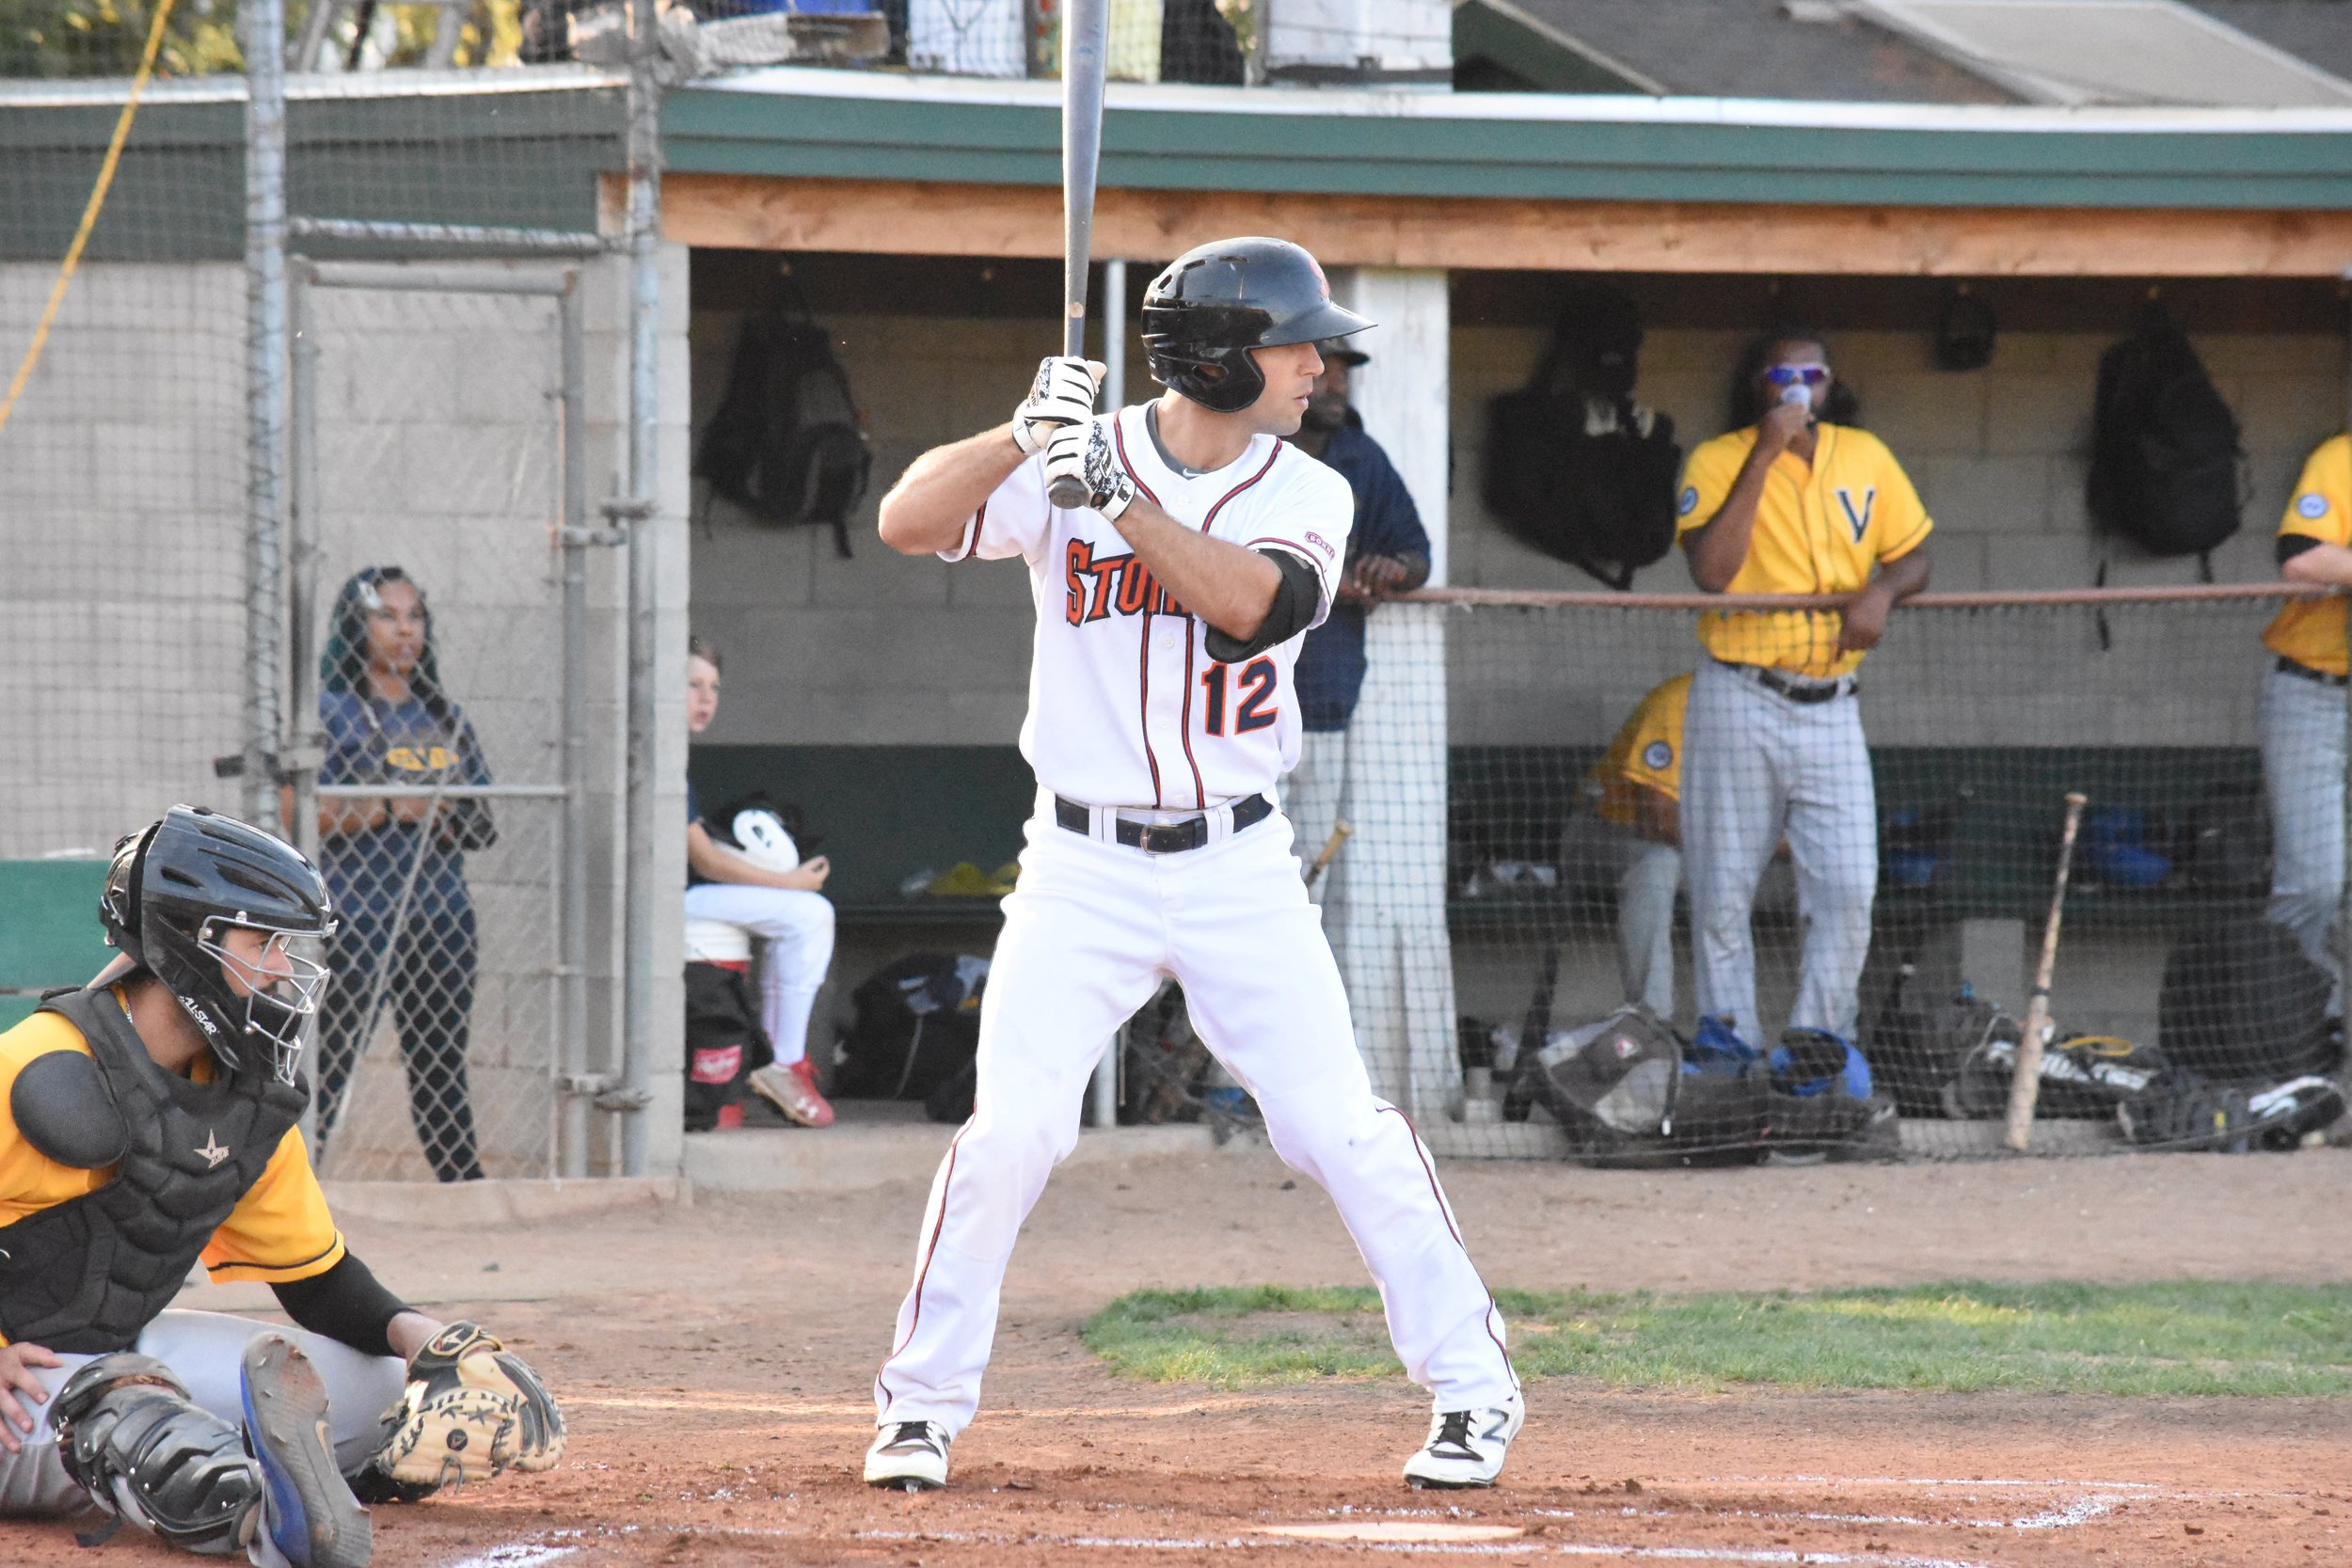 Brennan Metzger was the only Sonoma Stomper to record more than one hit in Tuesday night's 4-1 loss to the Vallejo Admirals. (James W. Toy III / Sonoma Stompers)